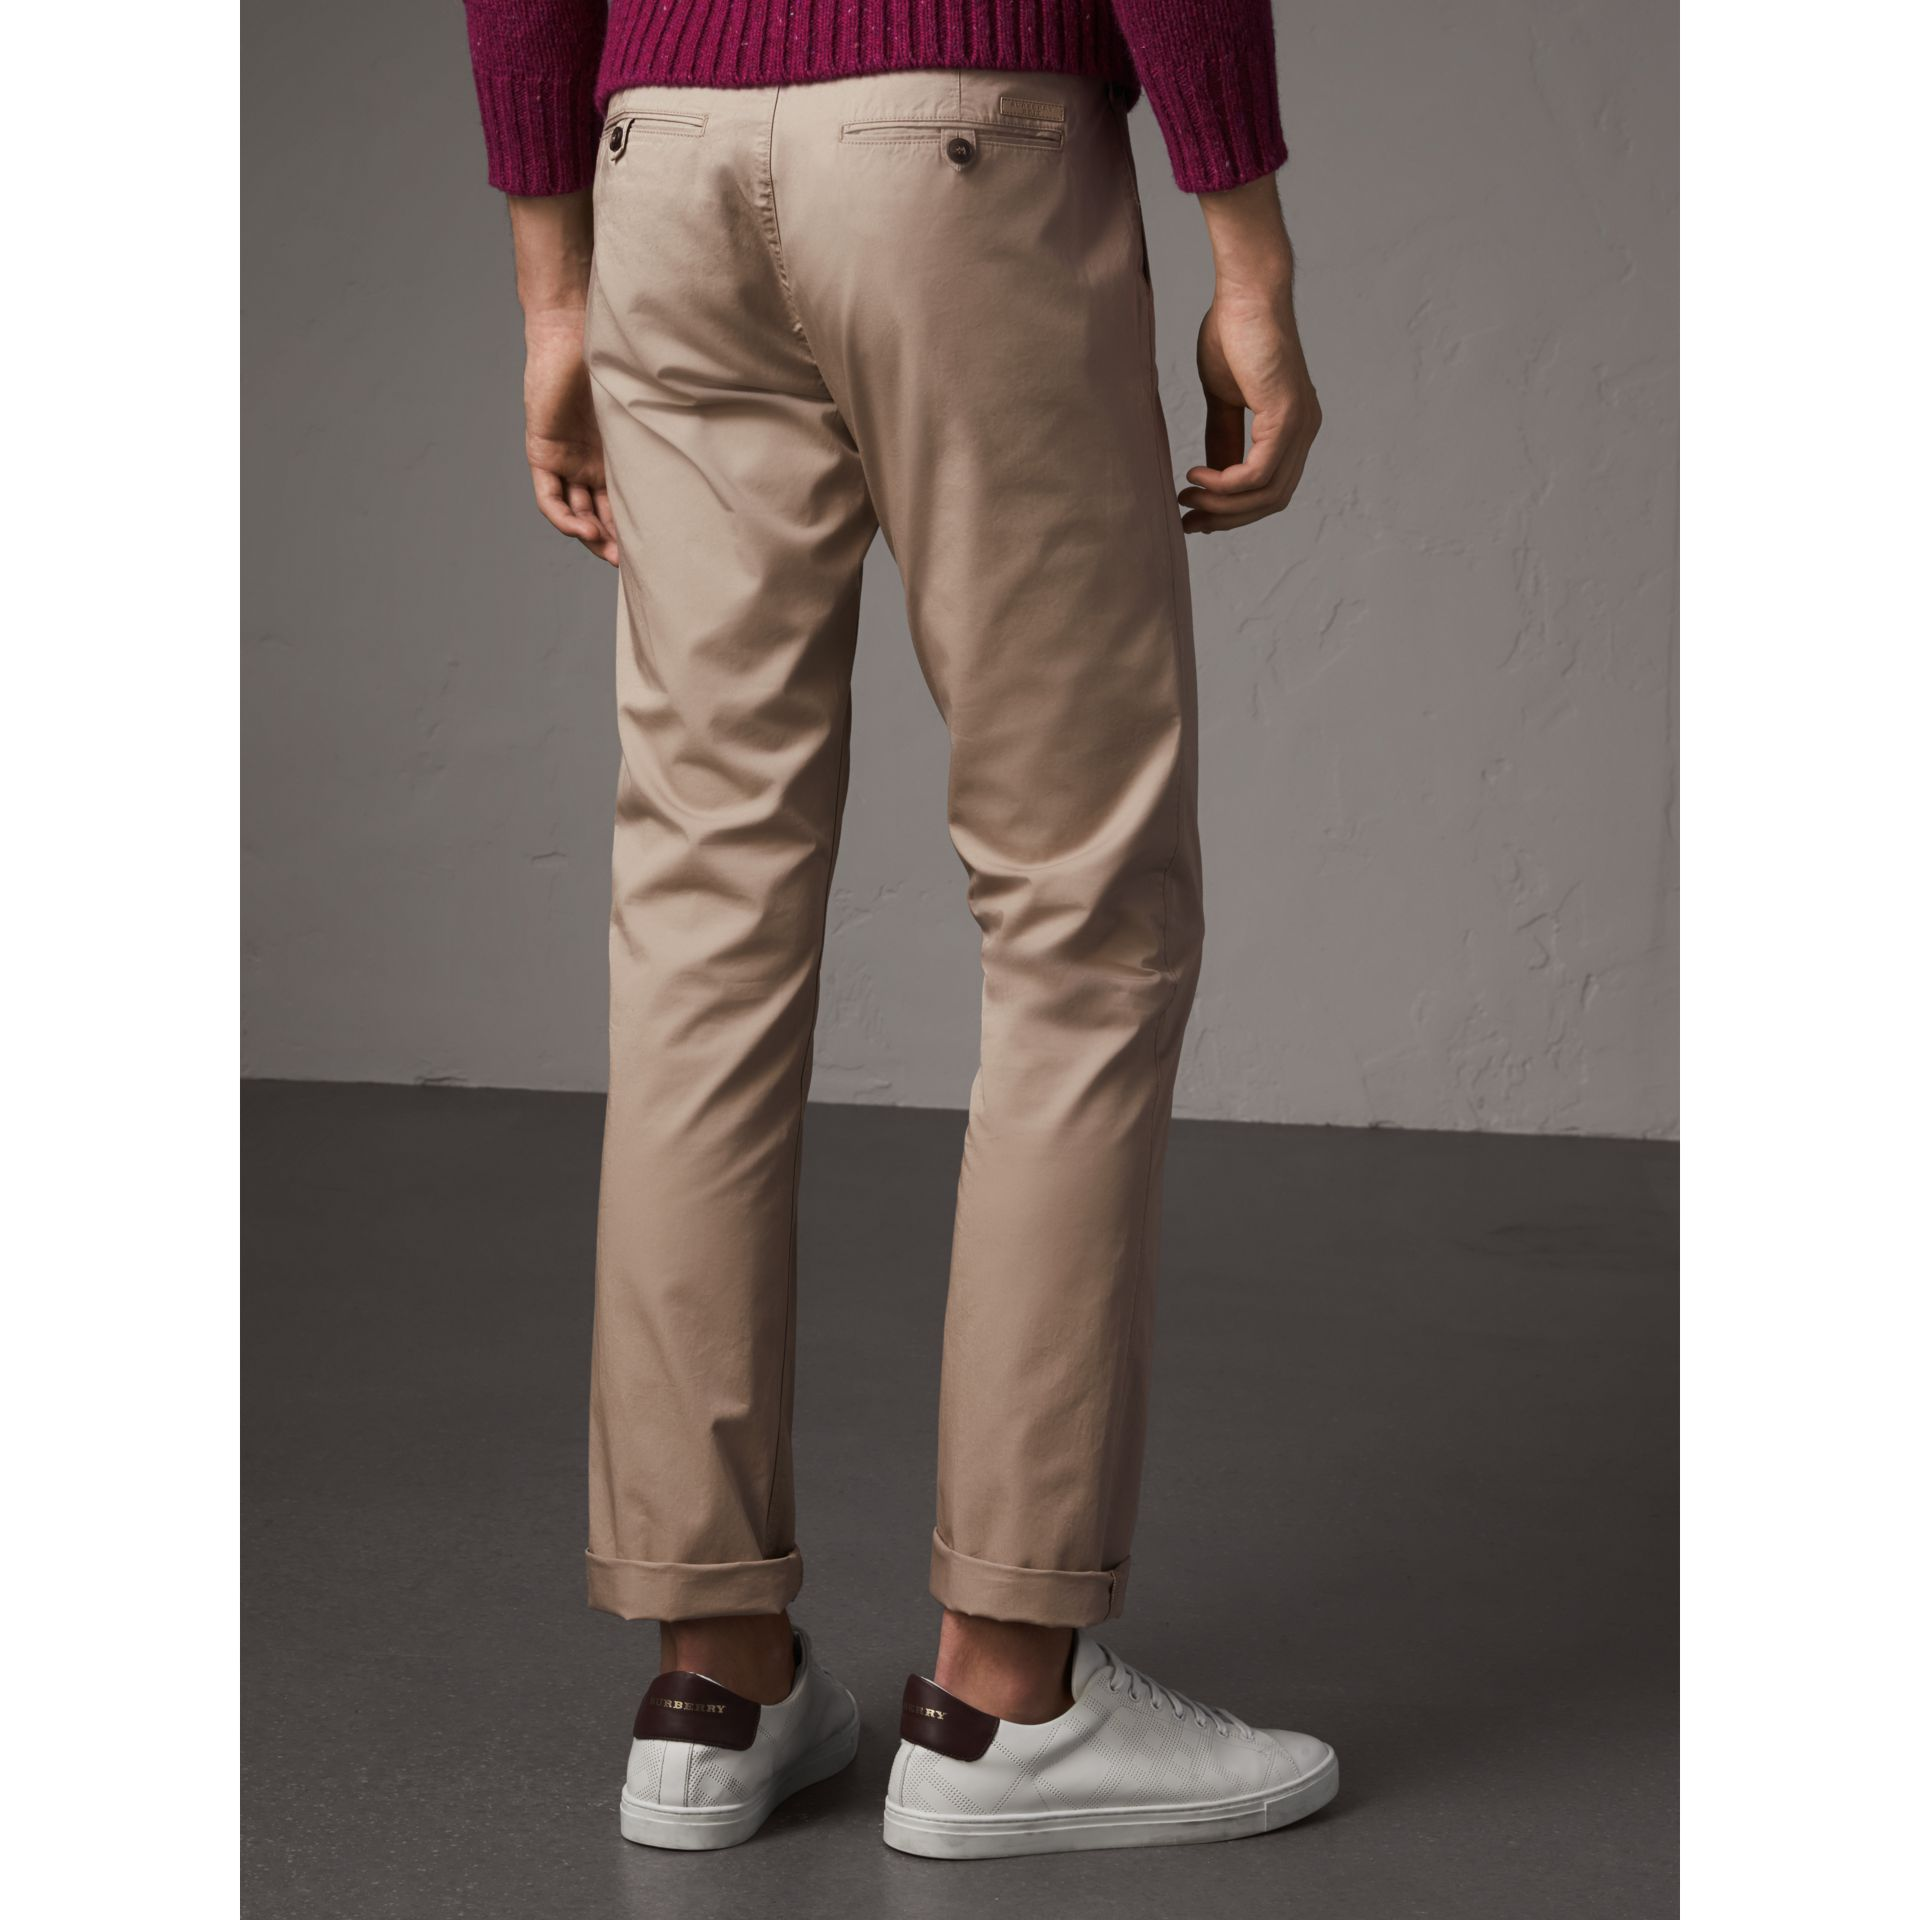 Pantalon chino de coupe droite en coton (Taupe) - Homme | Burberry - photo de la galerie 2